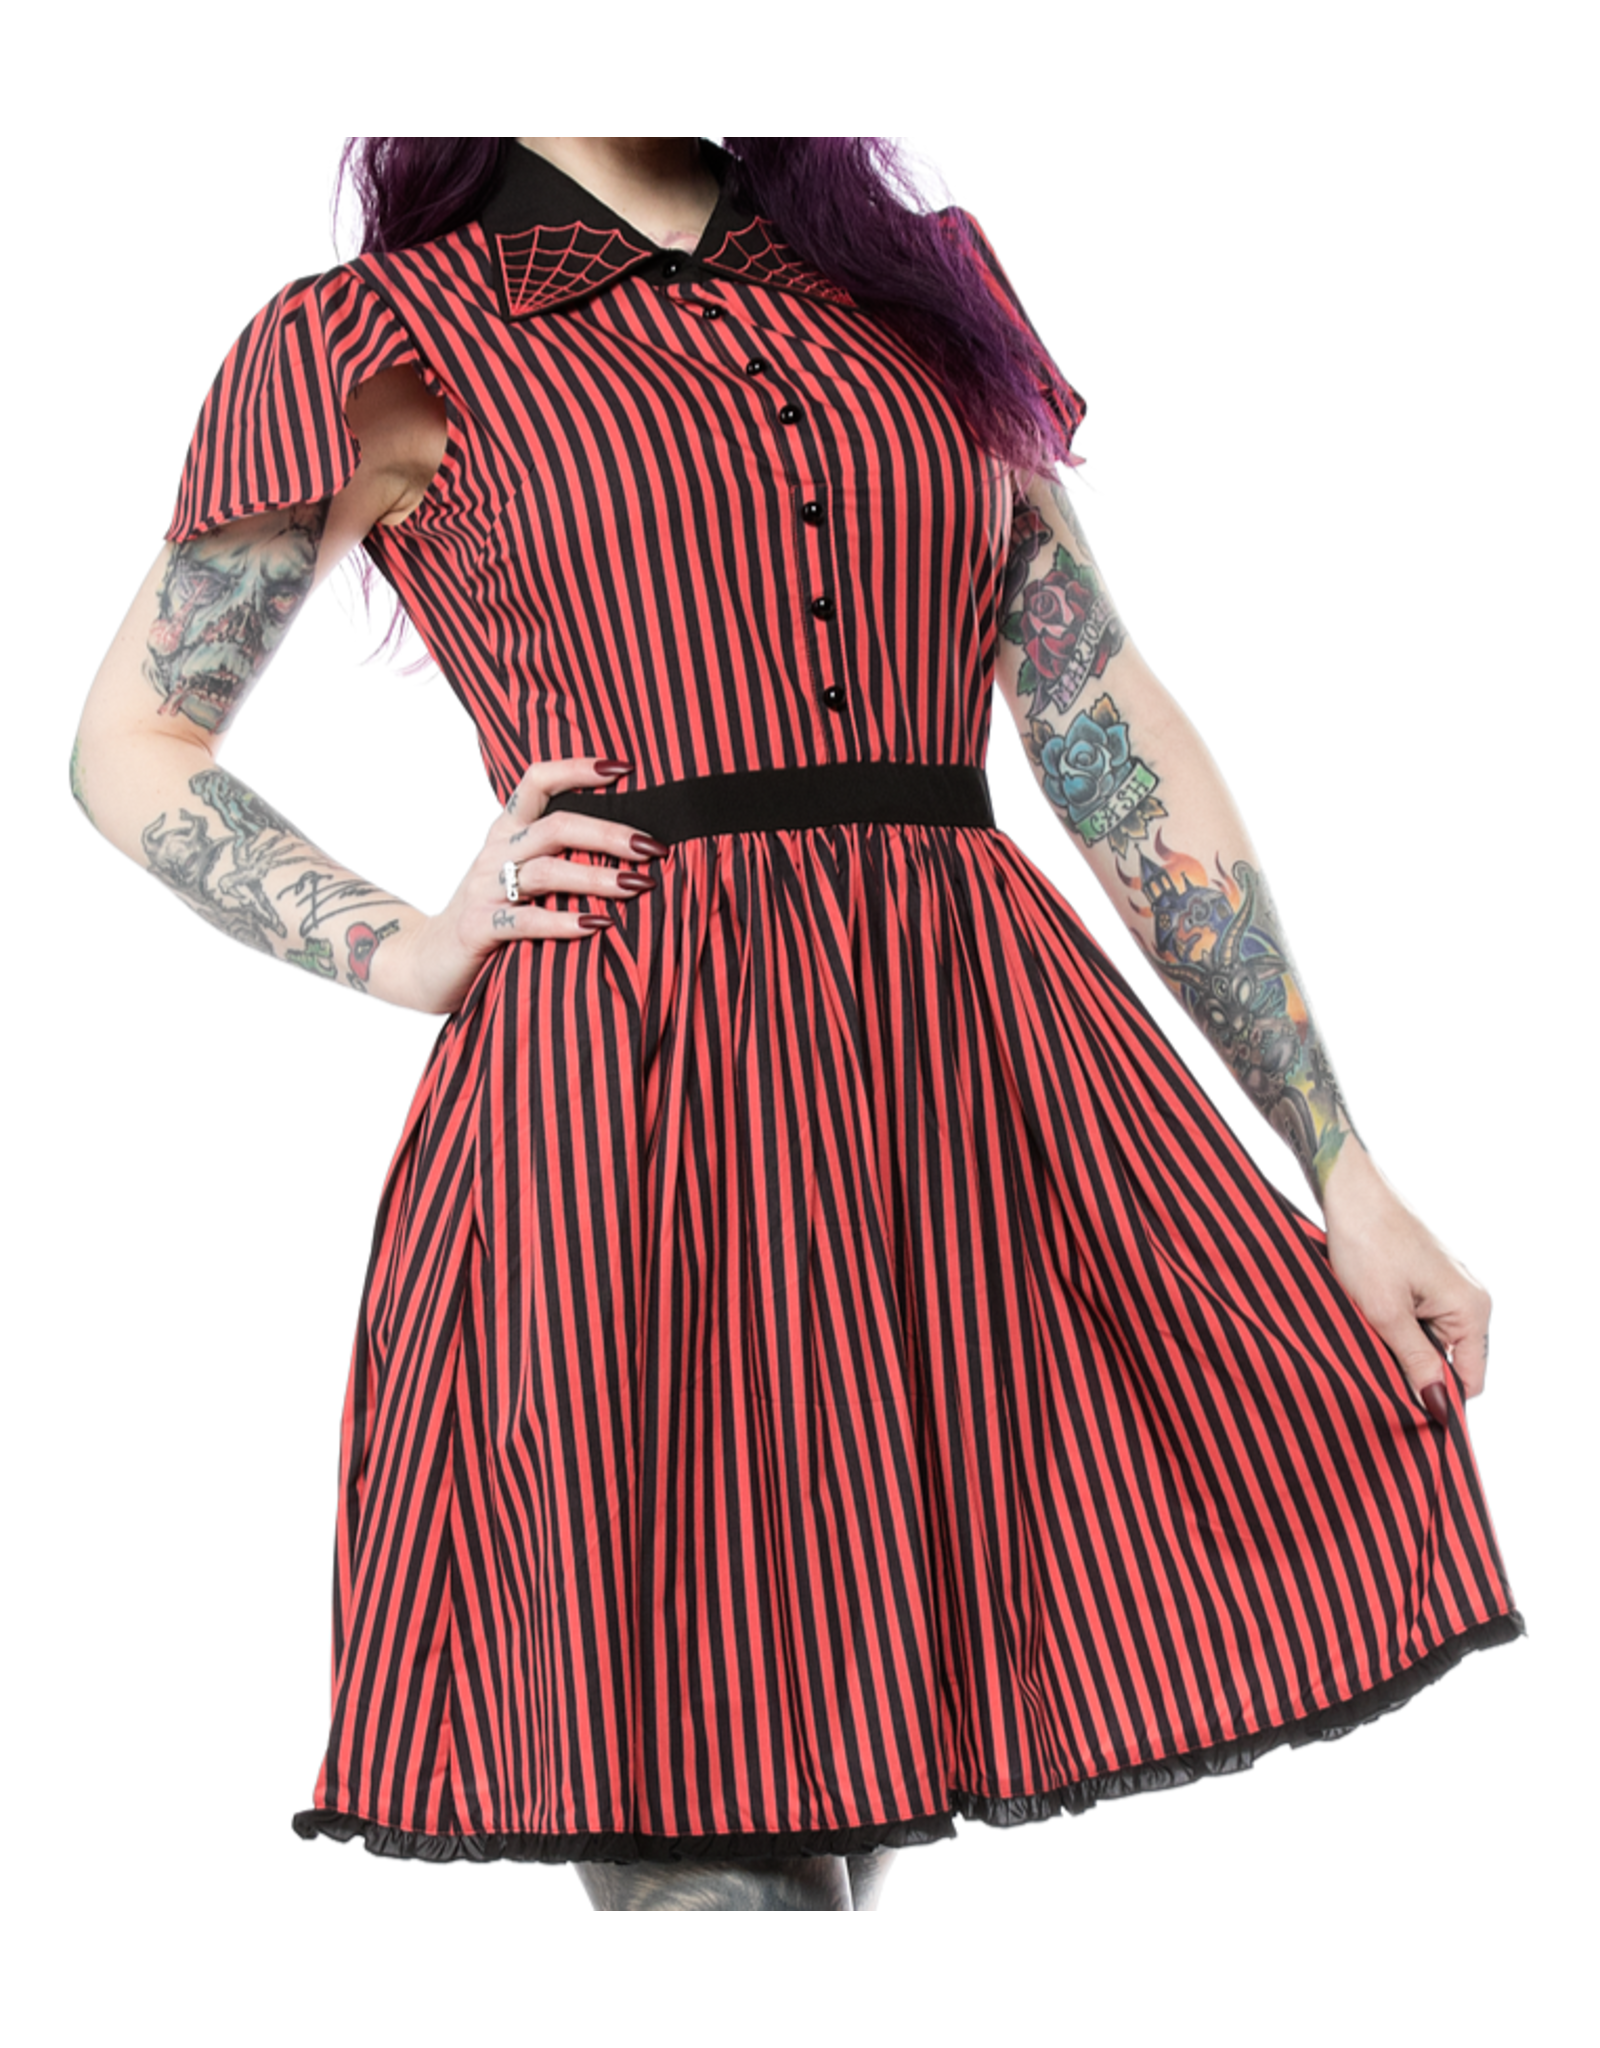 SOURPUSS - Striped Spiderweb Lydia Dress Red/Black